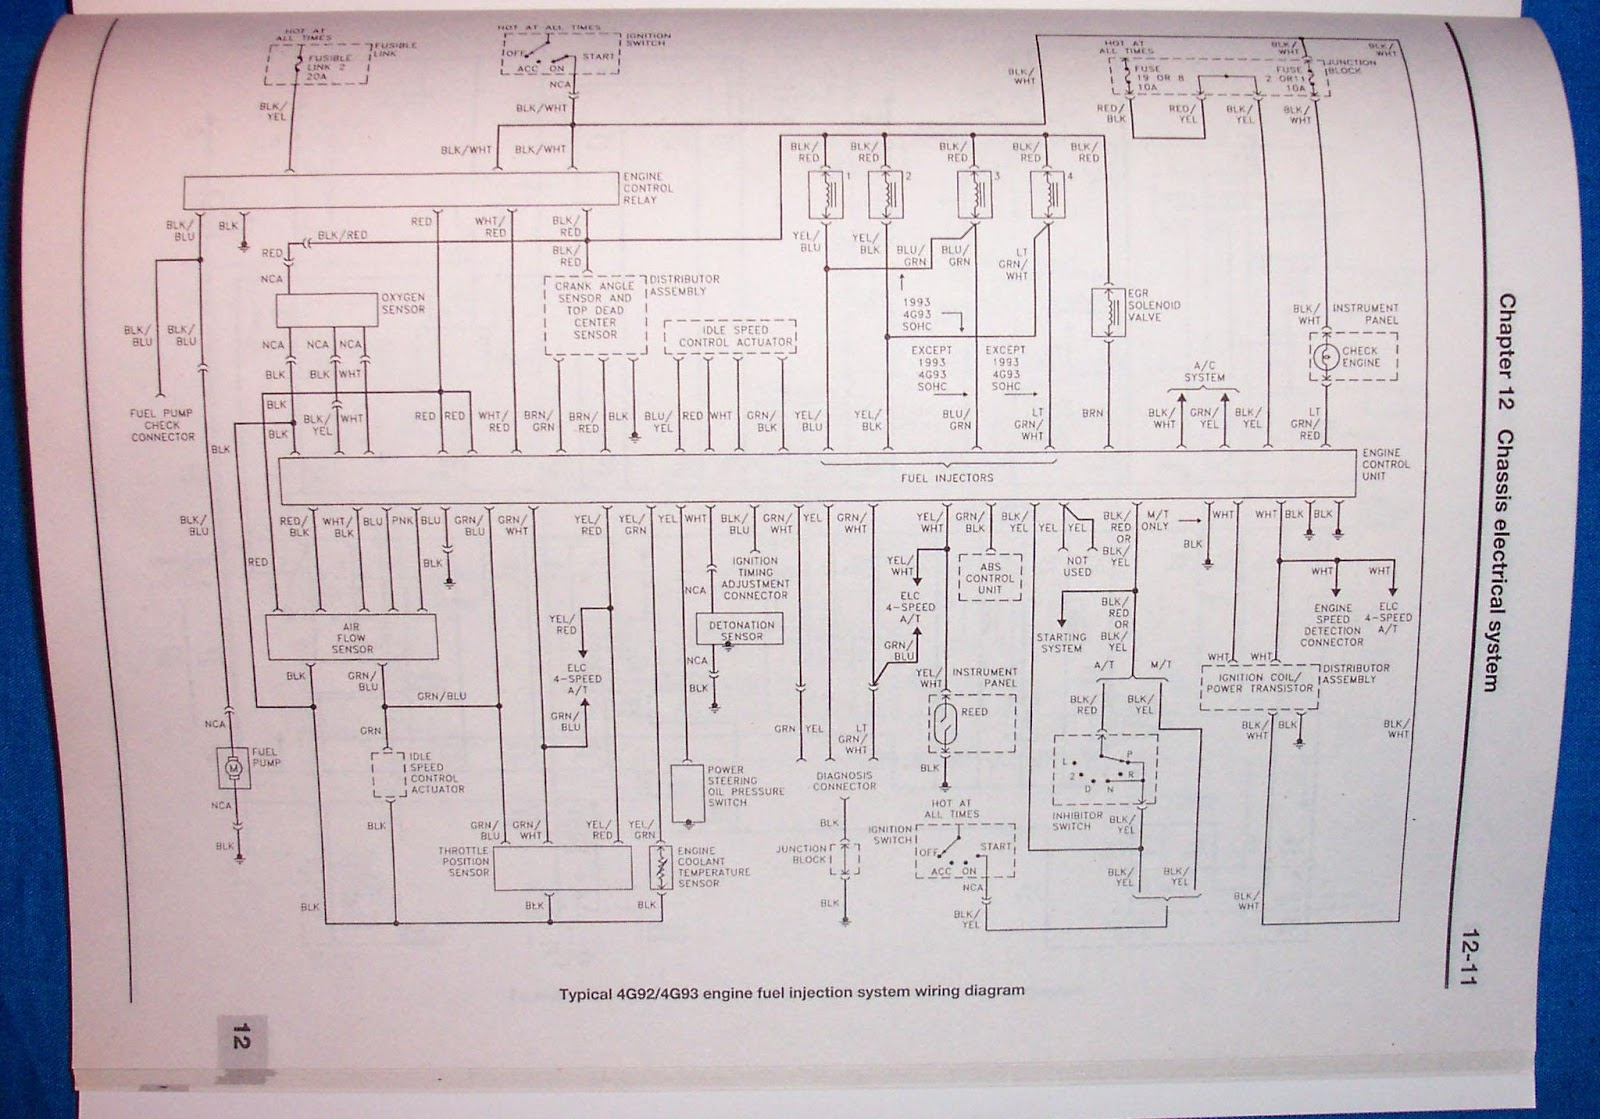 hight resolution of electrical wiring diagram for 4g9x